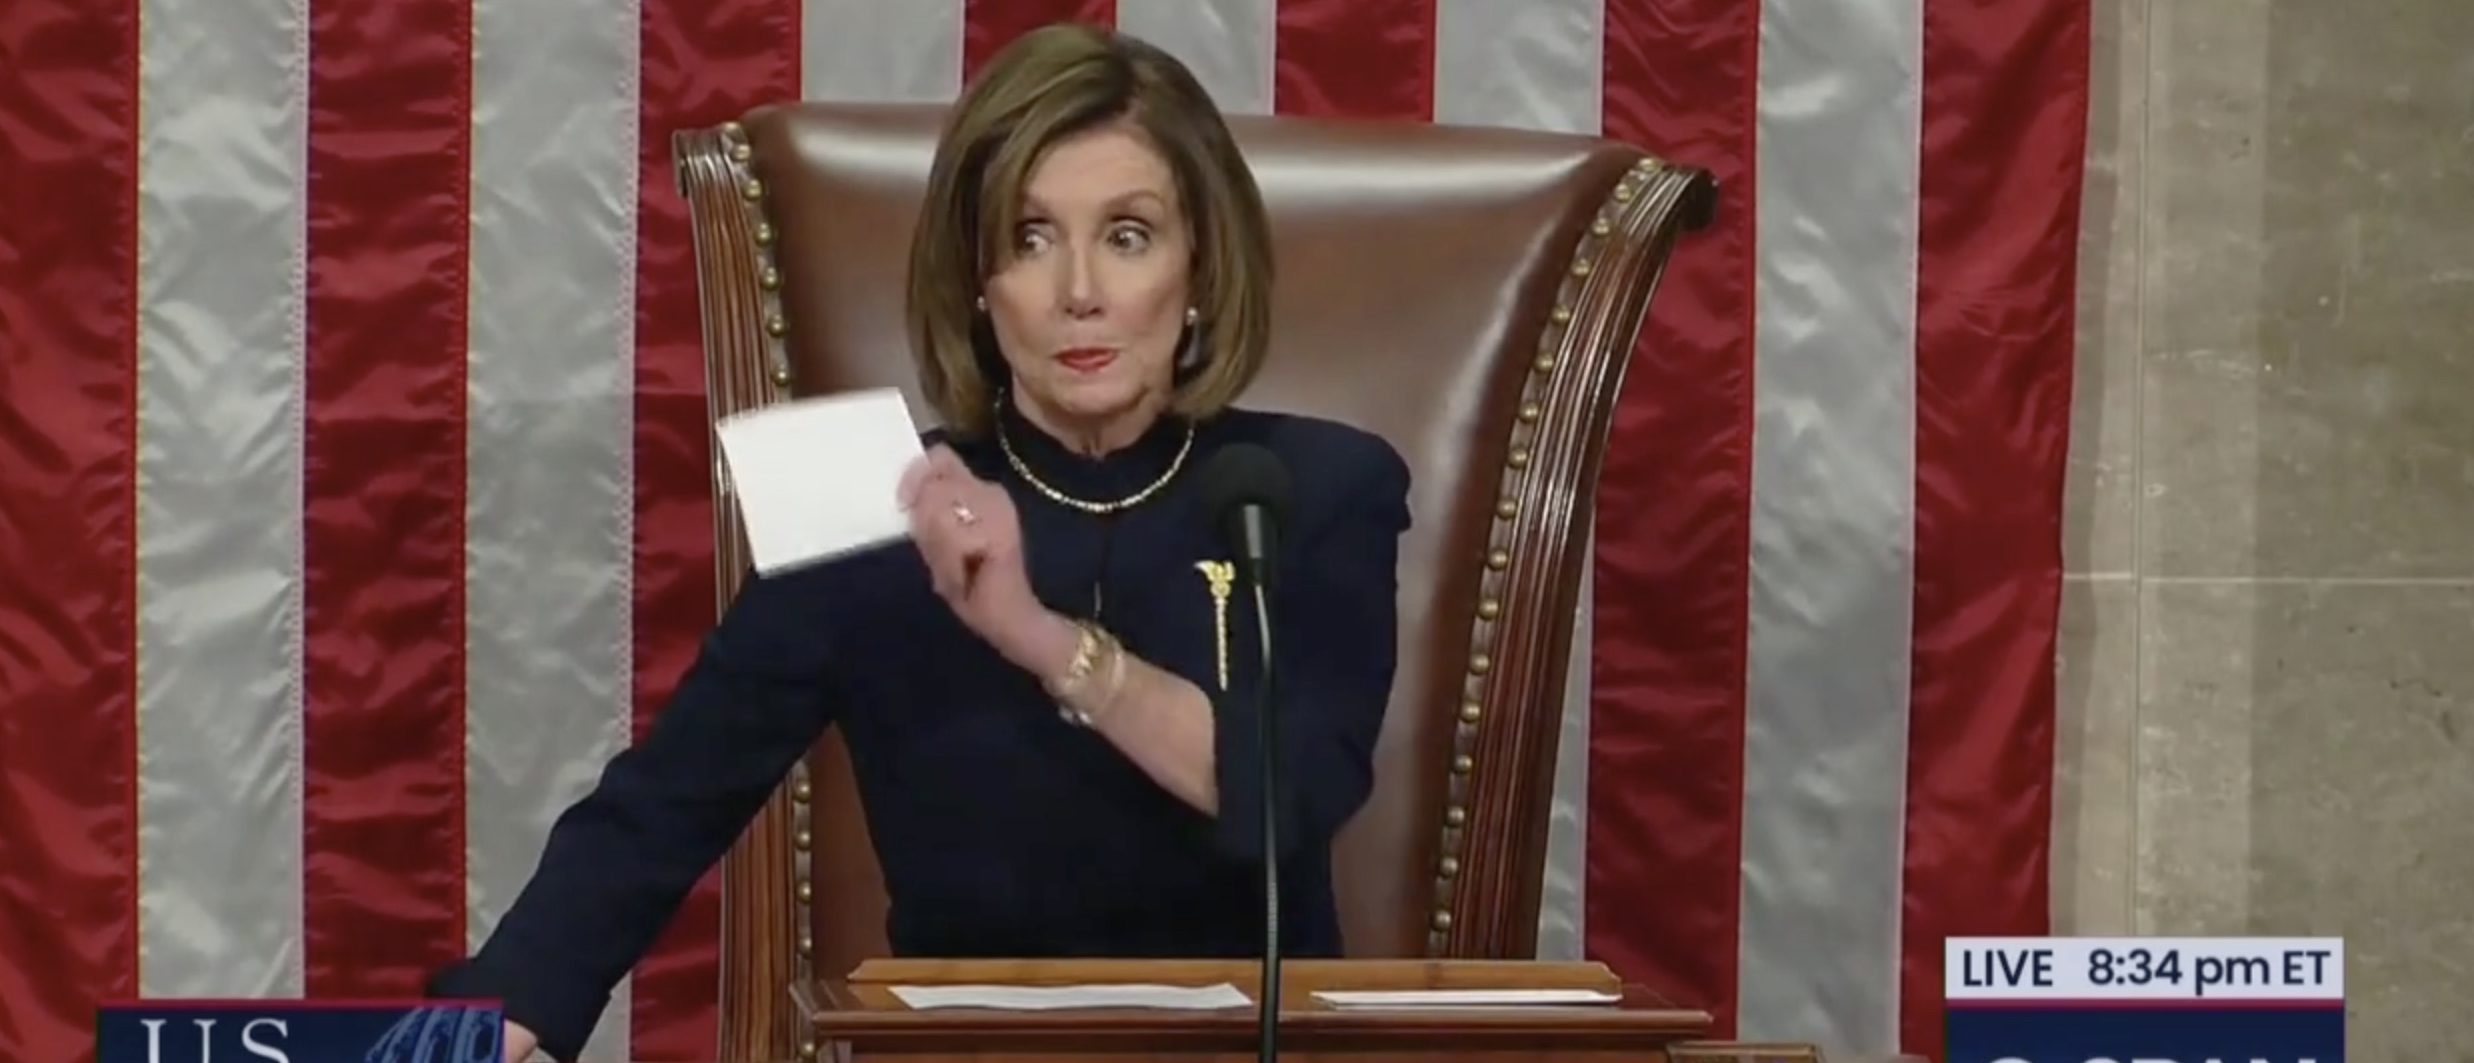 House Speaker Nancy Pelosi shot a withering glare at Democrats who applauded when she announced that the first article of impeachment against President Donald Trump had passed Wednesday. Screenshot/CSPAN